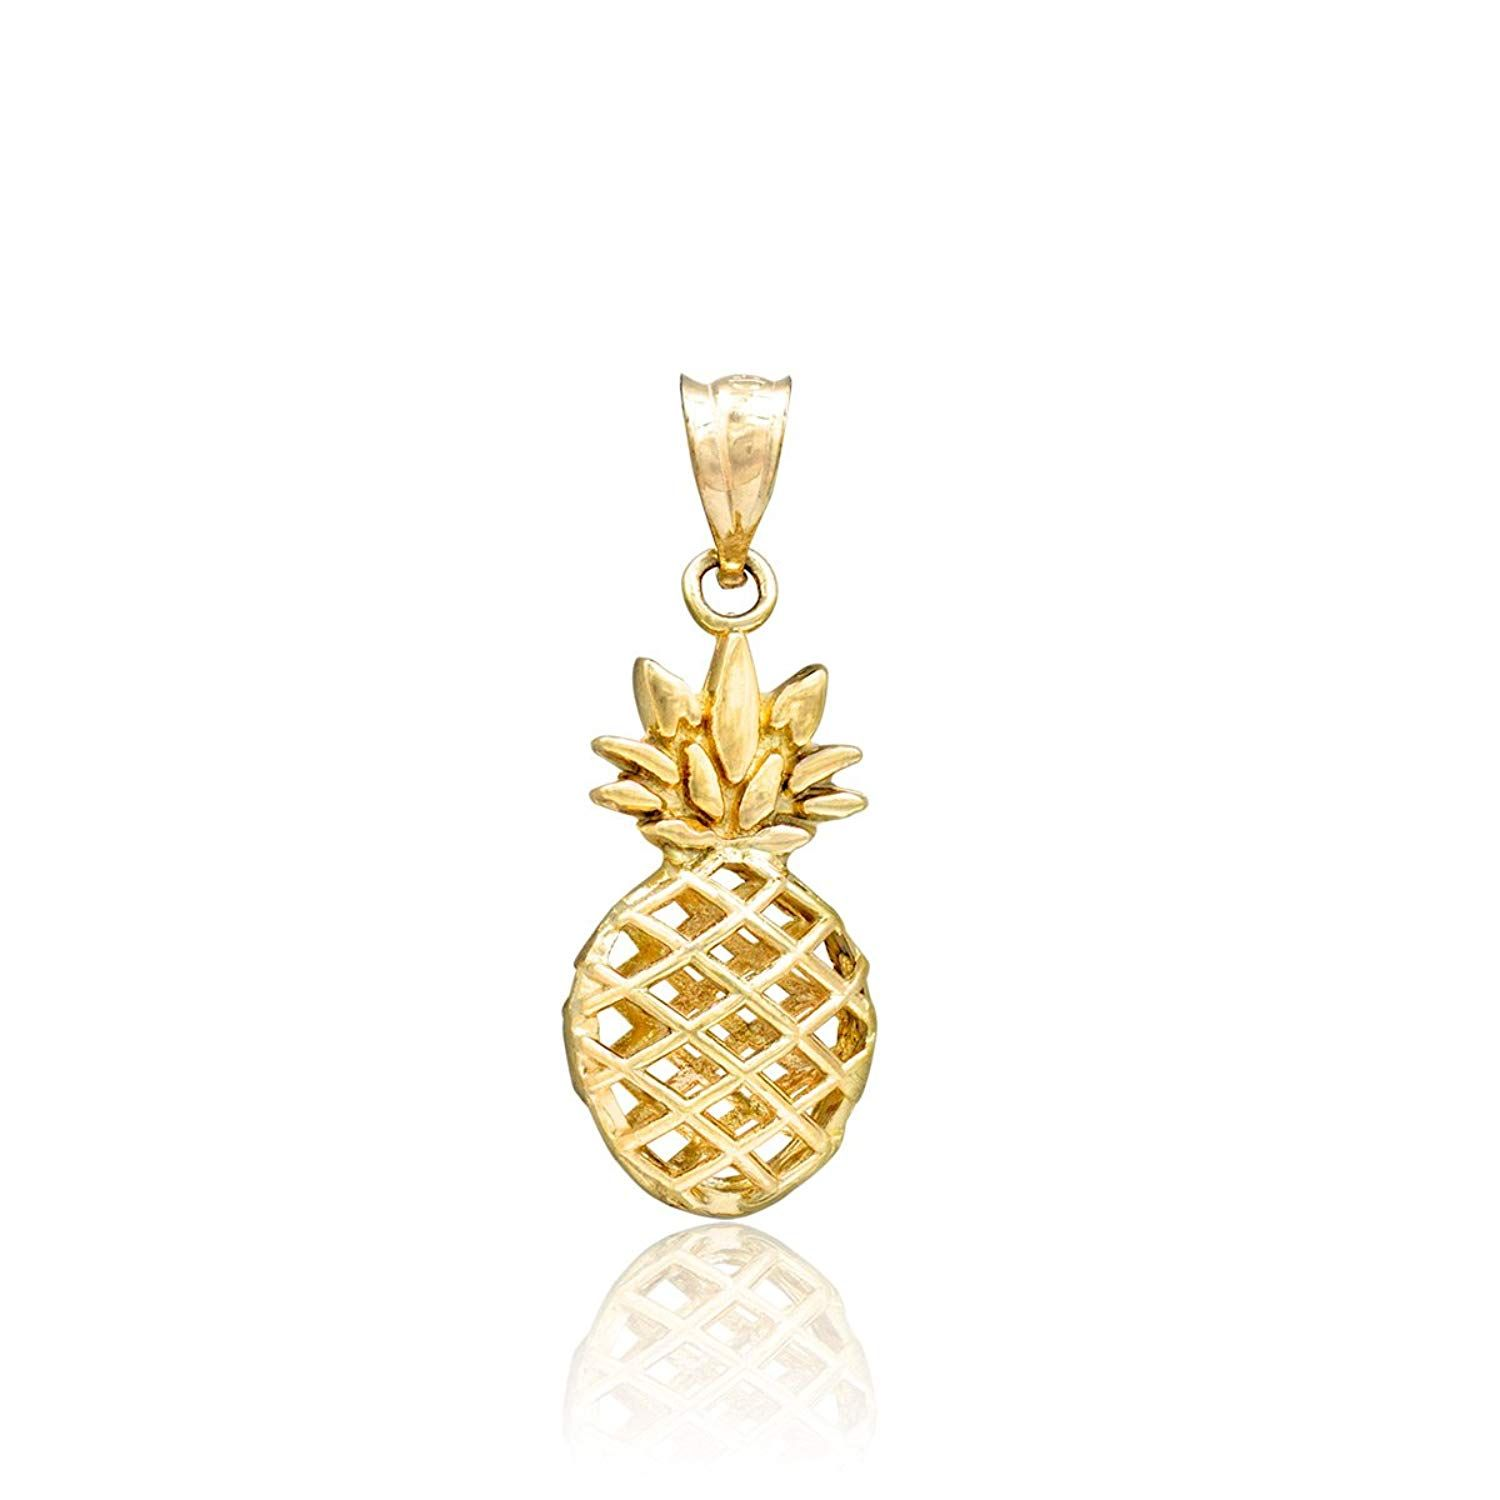 Honolulu Jewelry Company 14k Yellow Gold Pineapple Necklace Pendant Do Hope You Actually Love The Pineapple Necklace Gold Pineapple Necklace Gold Pineapple